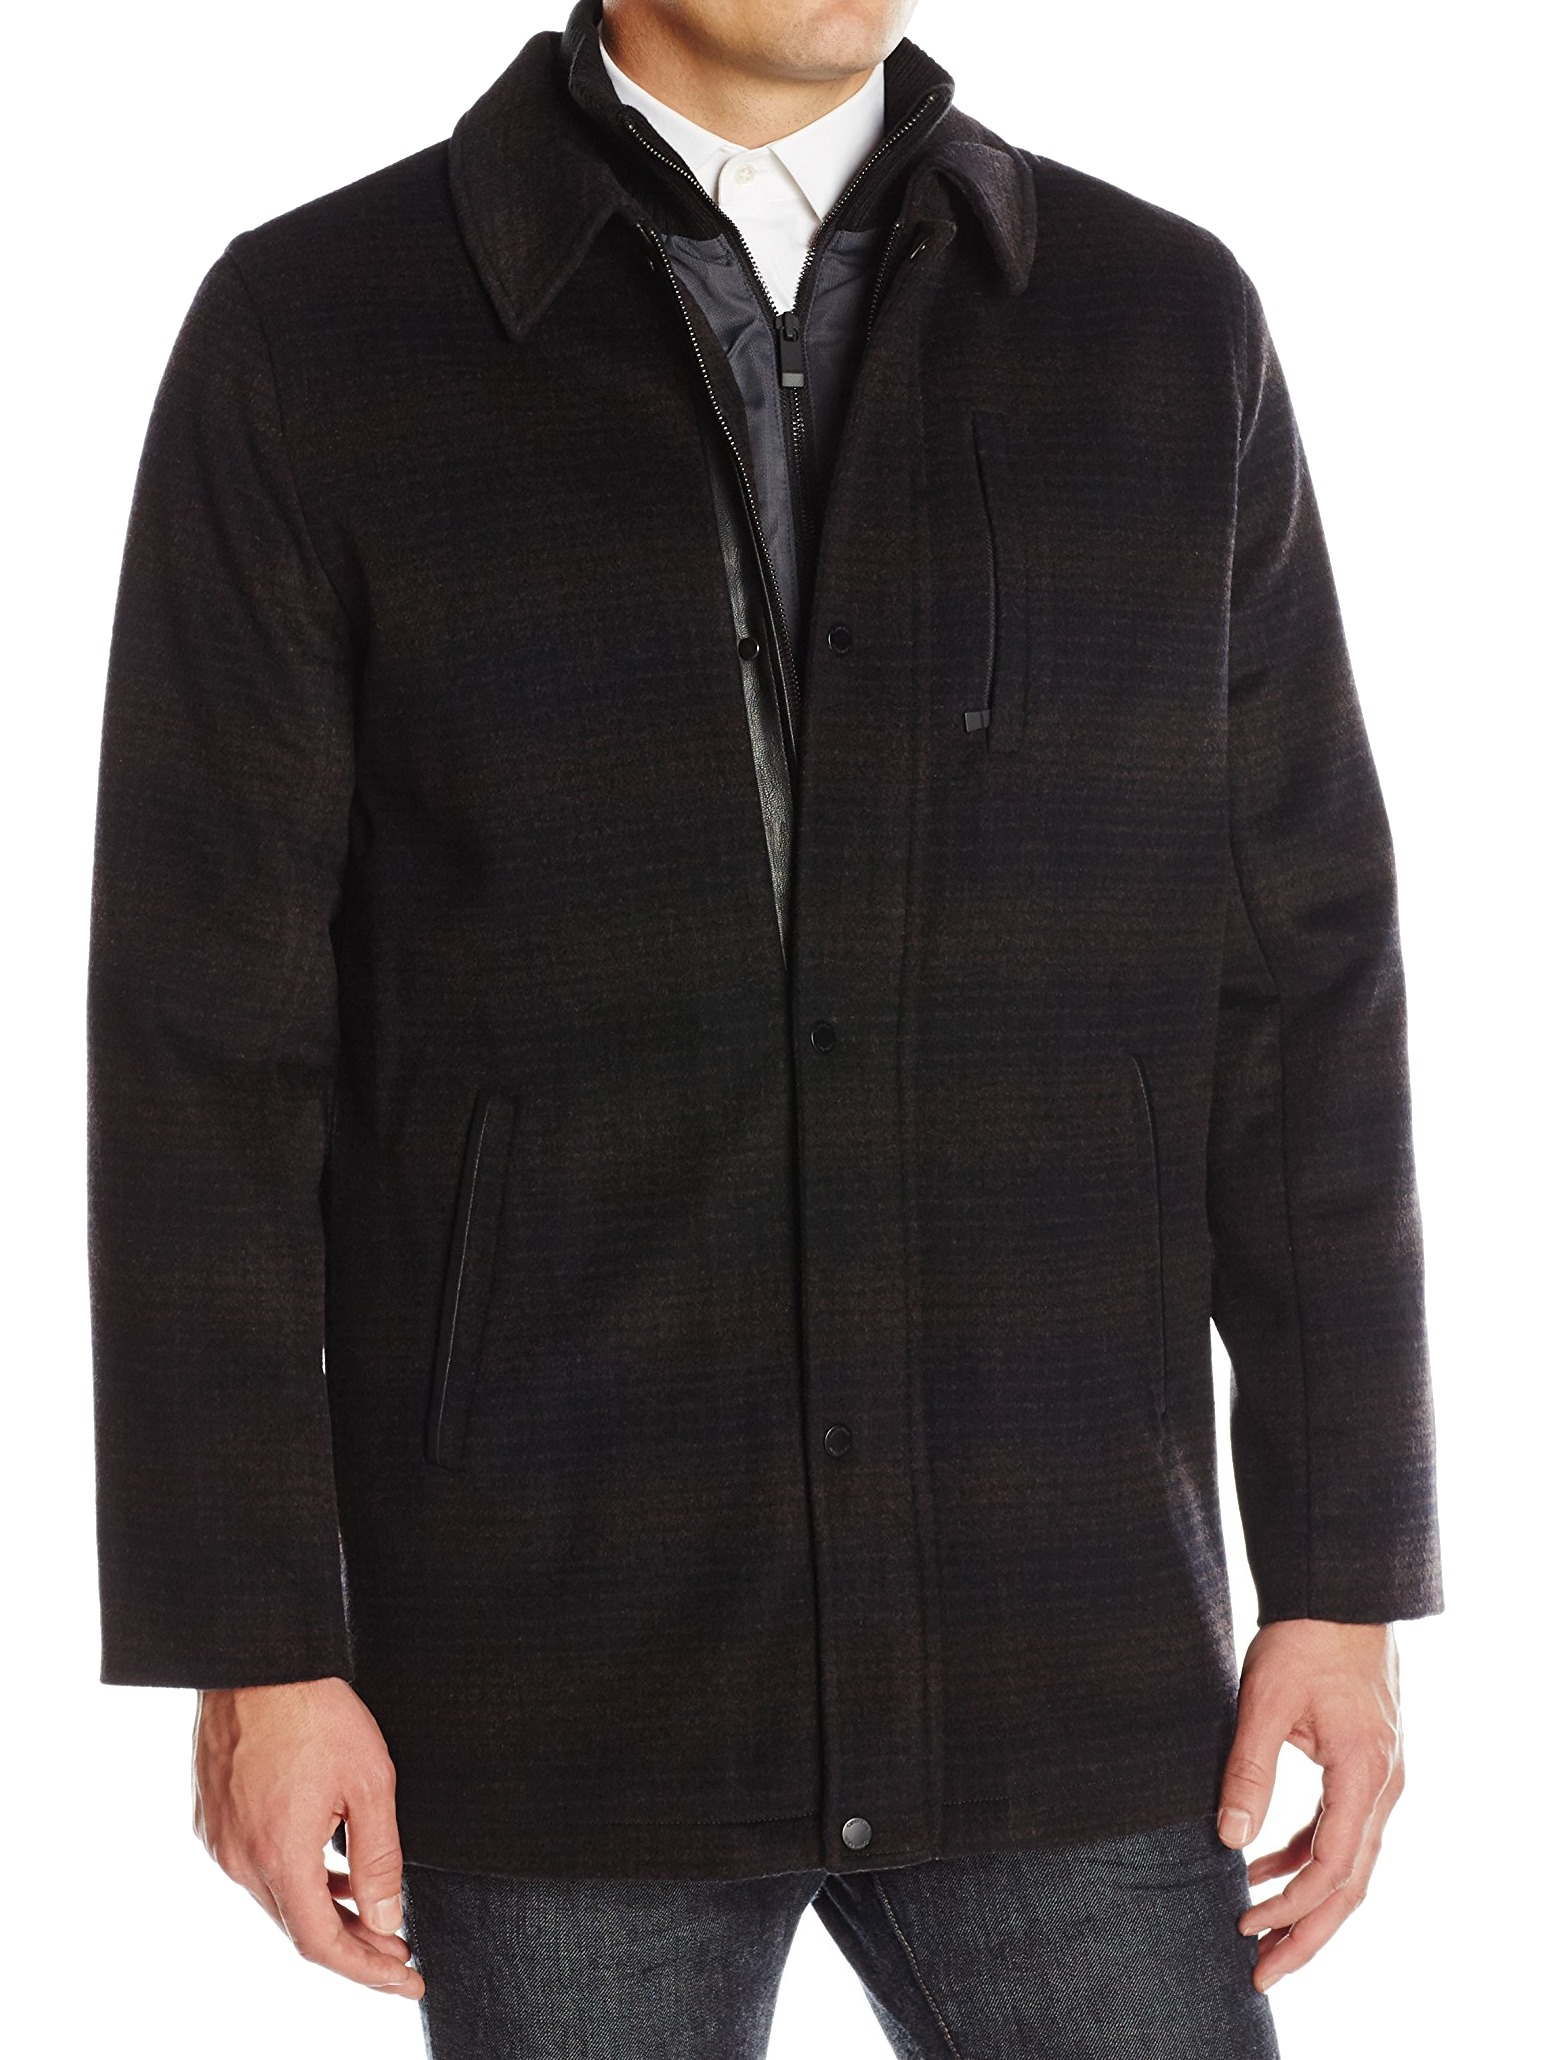 Calvin Klein New Brown Mens Size Large L Wool Bibbed Pattern Car Coat by Mens Wool Coats